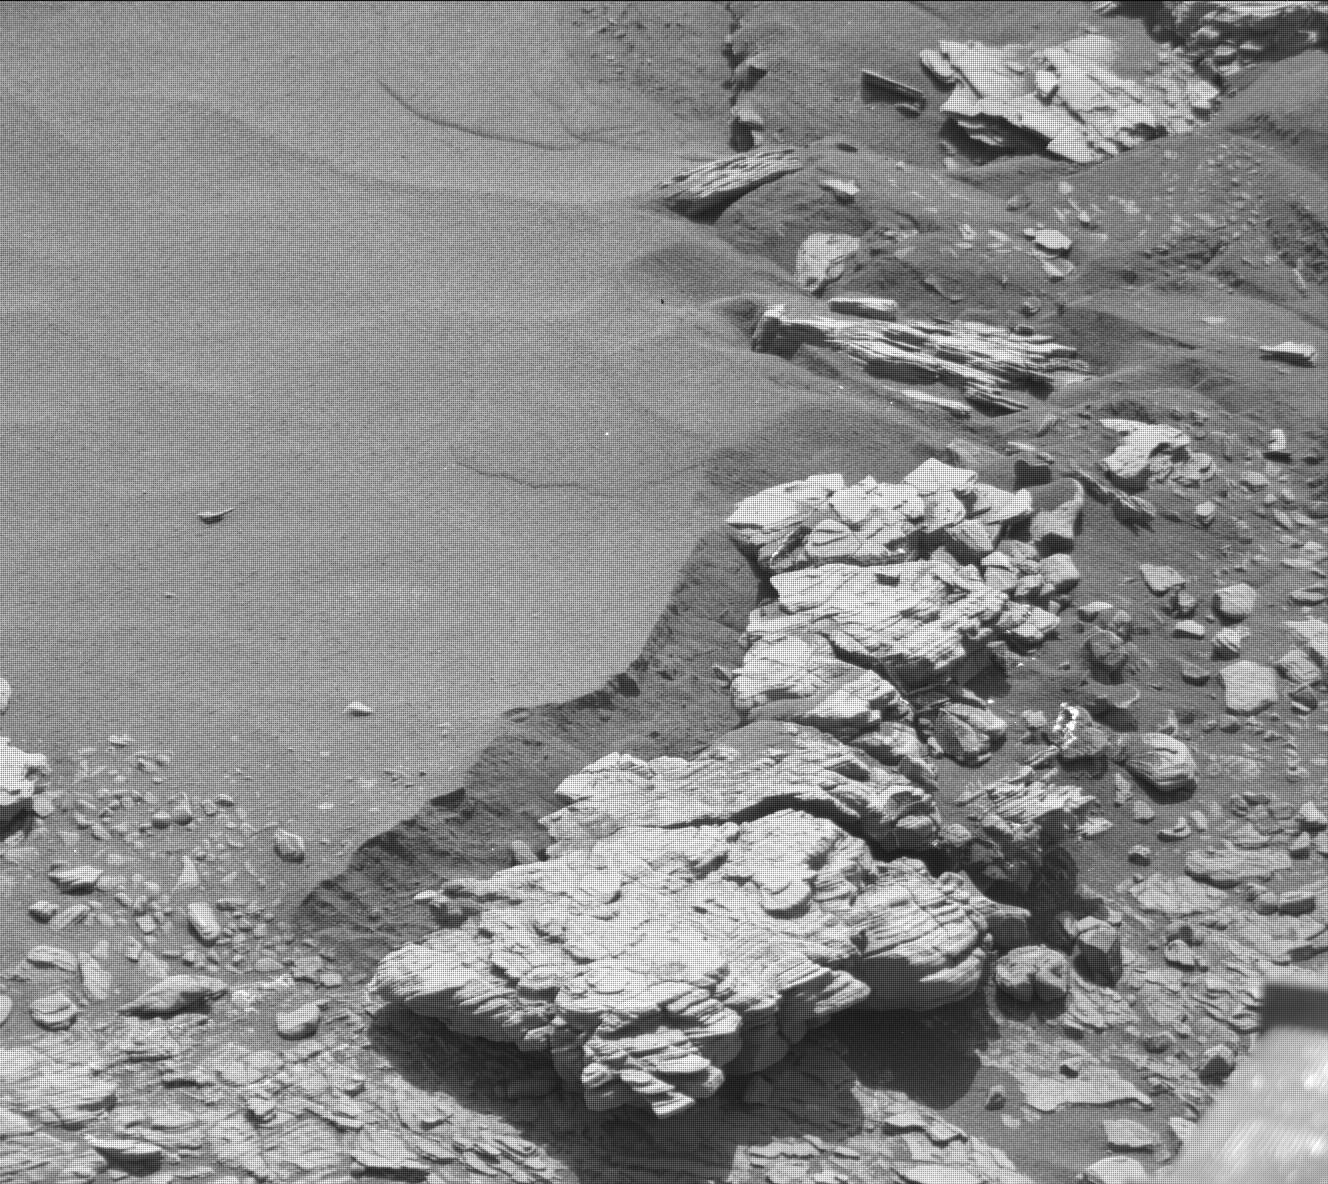 Nasa's Mars rover Curiosity acquired this image using its Mast Camera (Mastcam) on Sol 2463